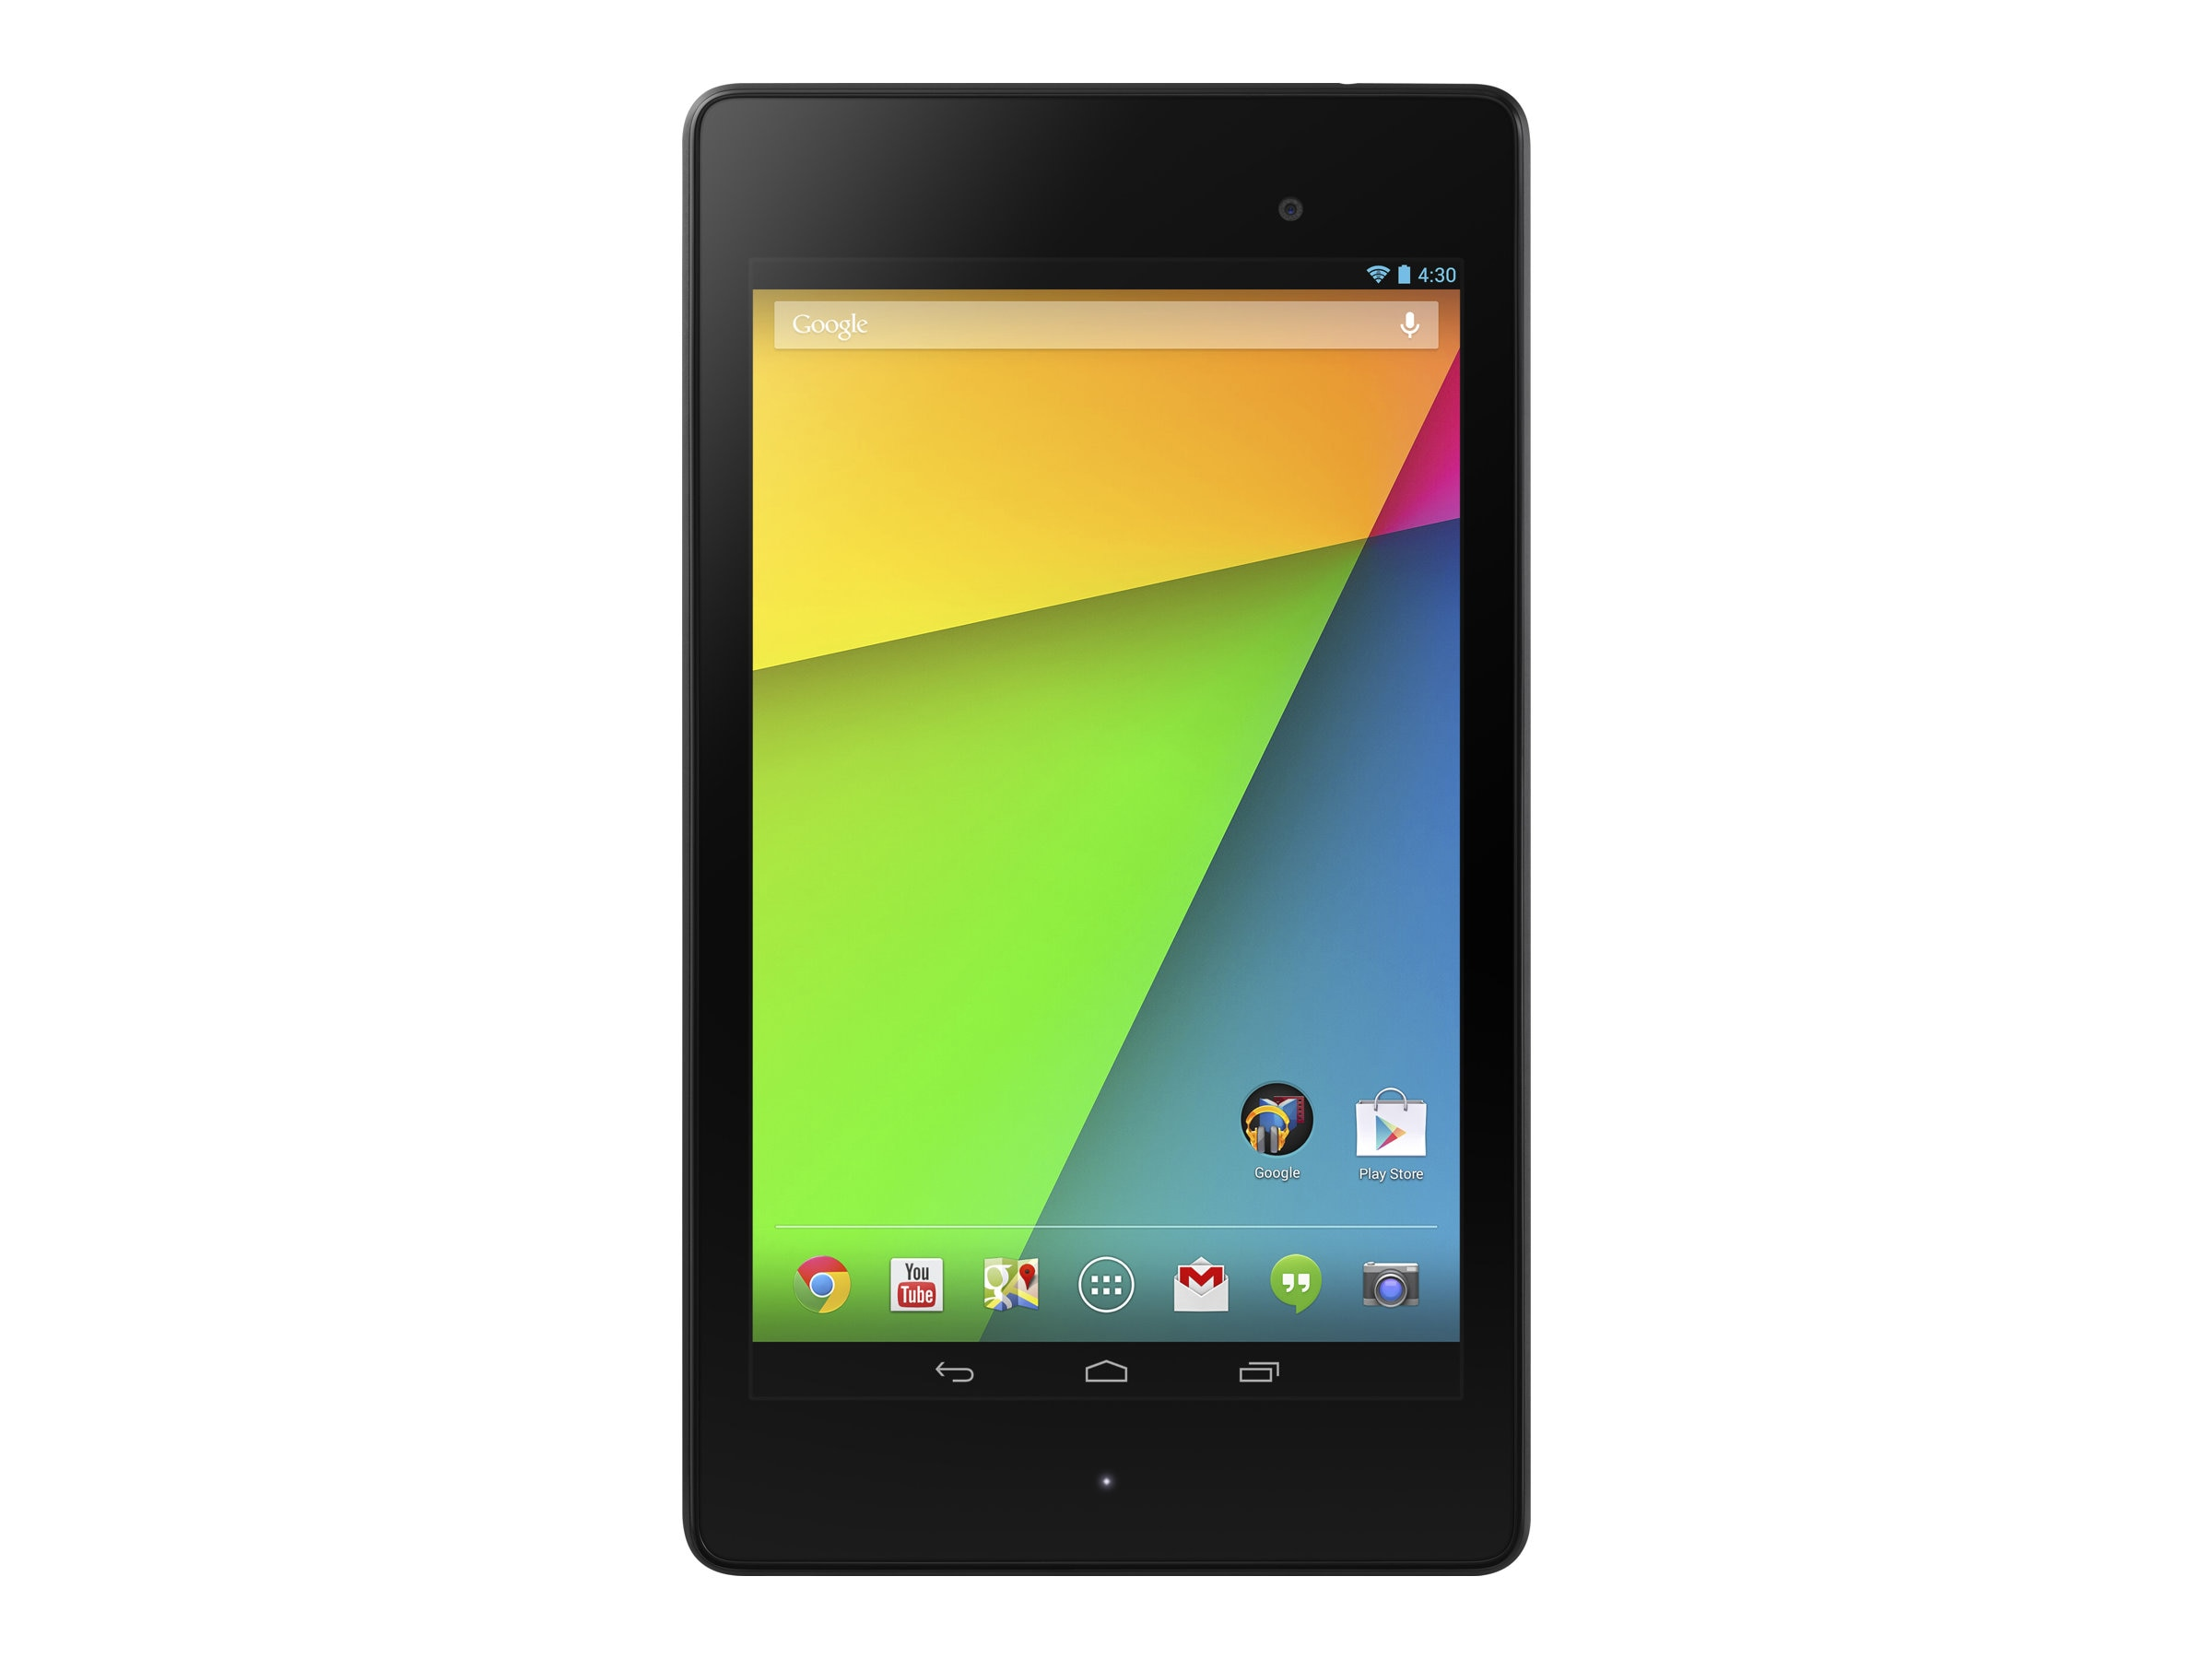 Asus Nexus 7 Snapdragon S4 Pro 1.5GHz 2GB 16GB abgn BT 2xWC 7 FHD MT Android 5.0, NEXUS7ASUS-2B16, 15976153, Tablets